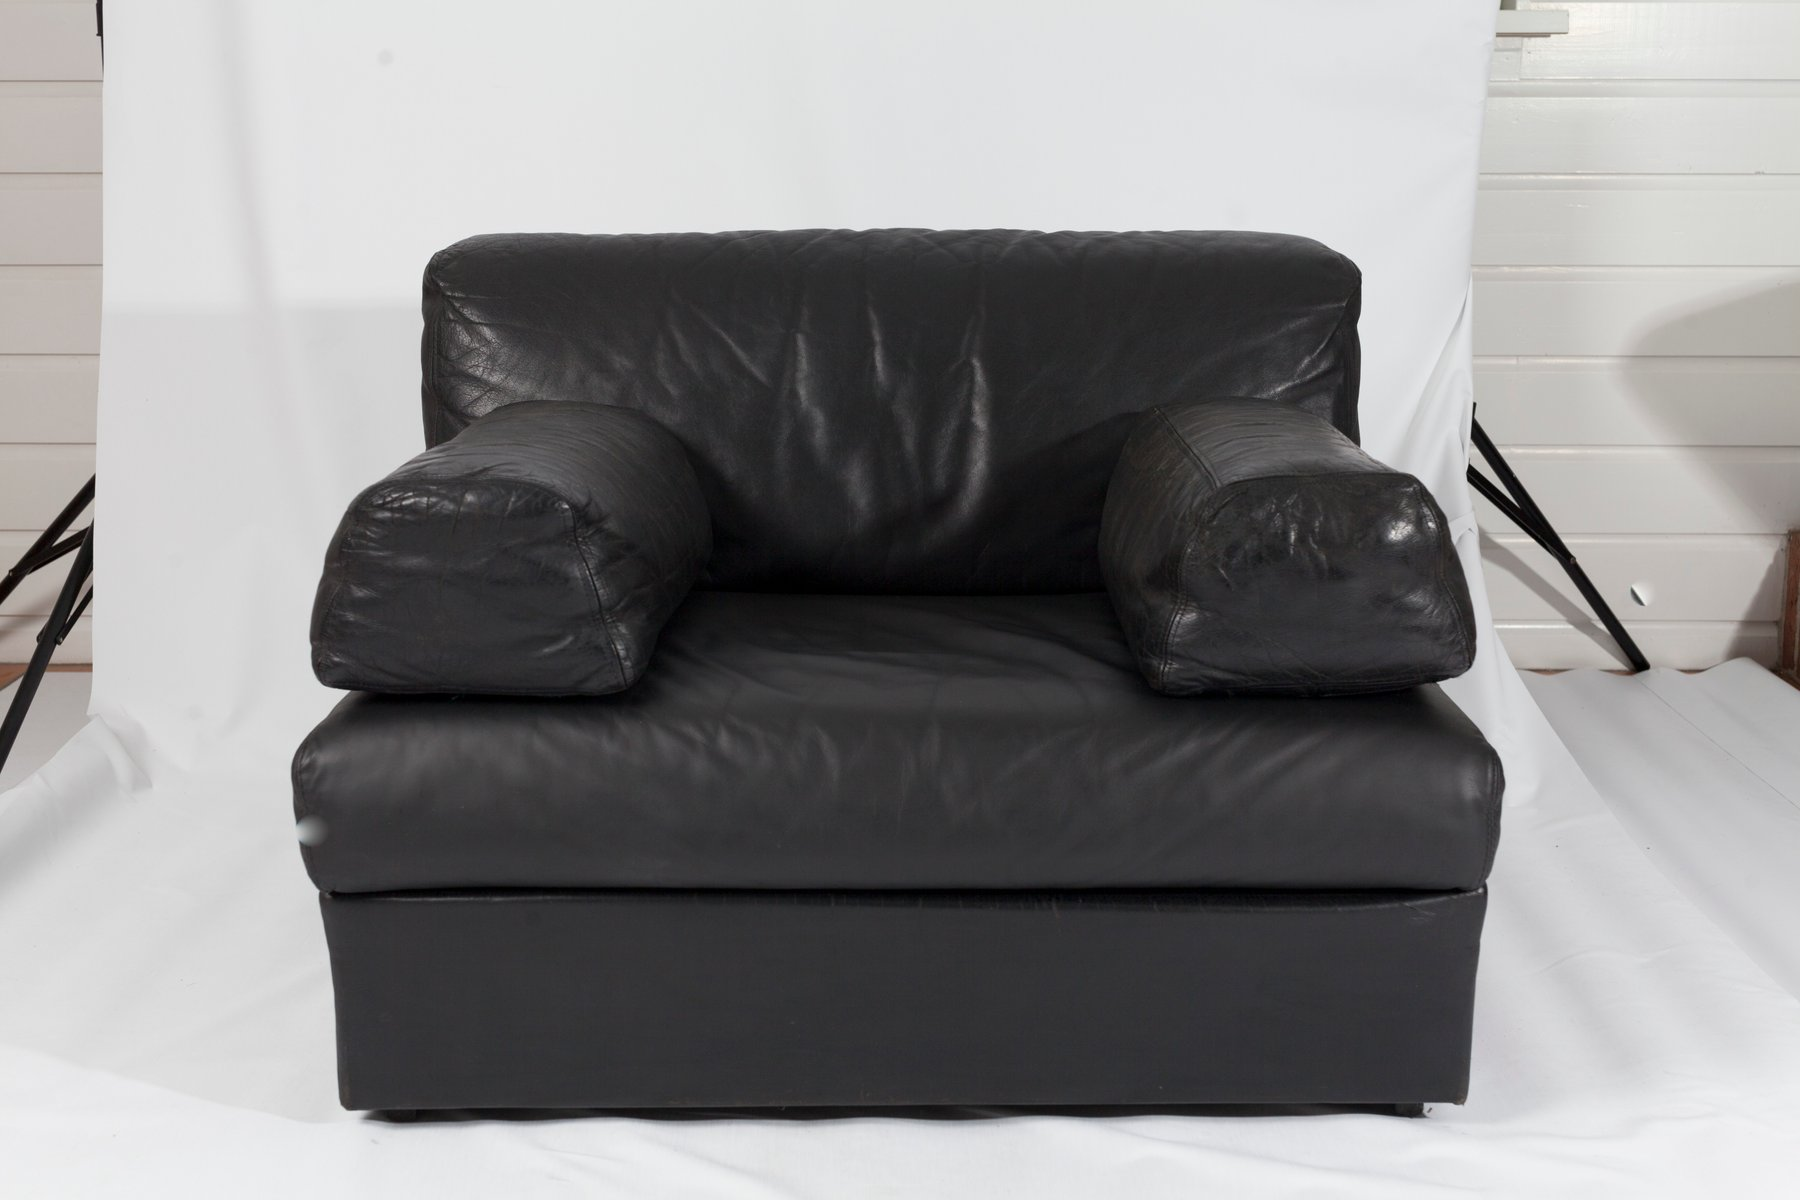 Black Leather Sectional Sofa 1980s for sale at Pamono